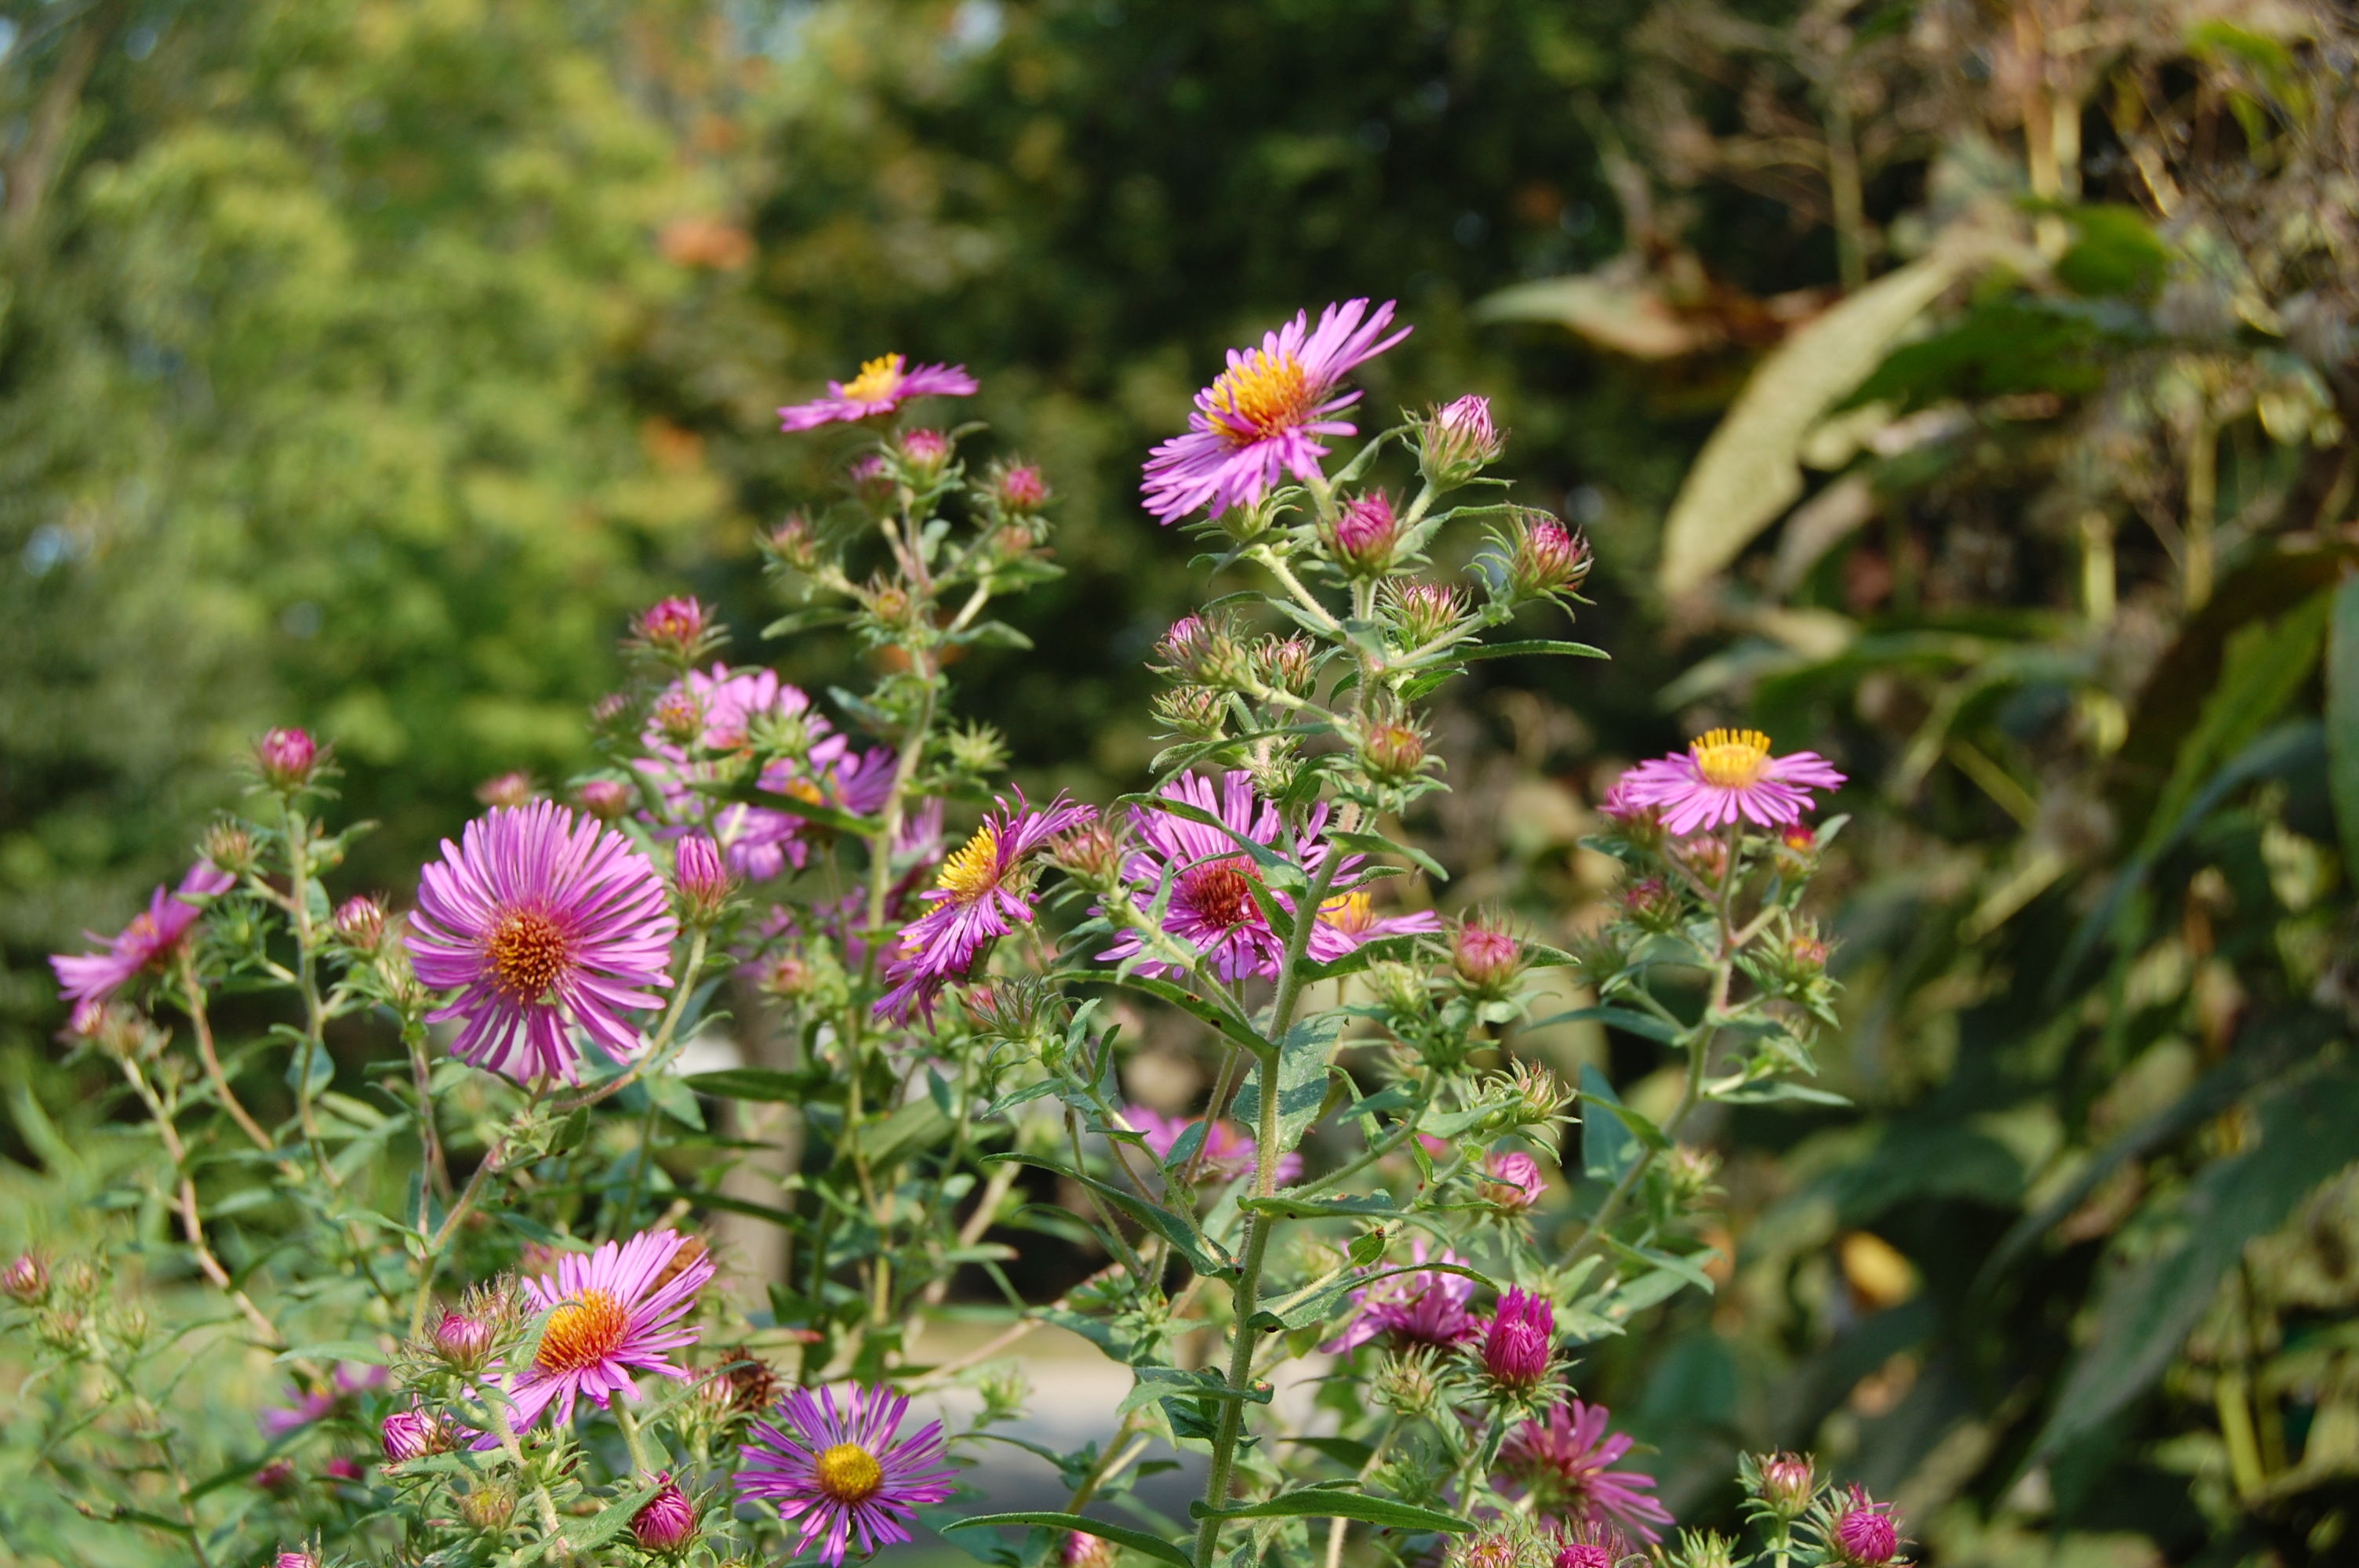 An Astonishing Variety Of Mostly Wild Asters Gardeninacity